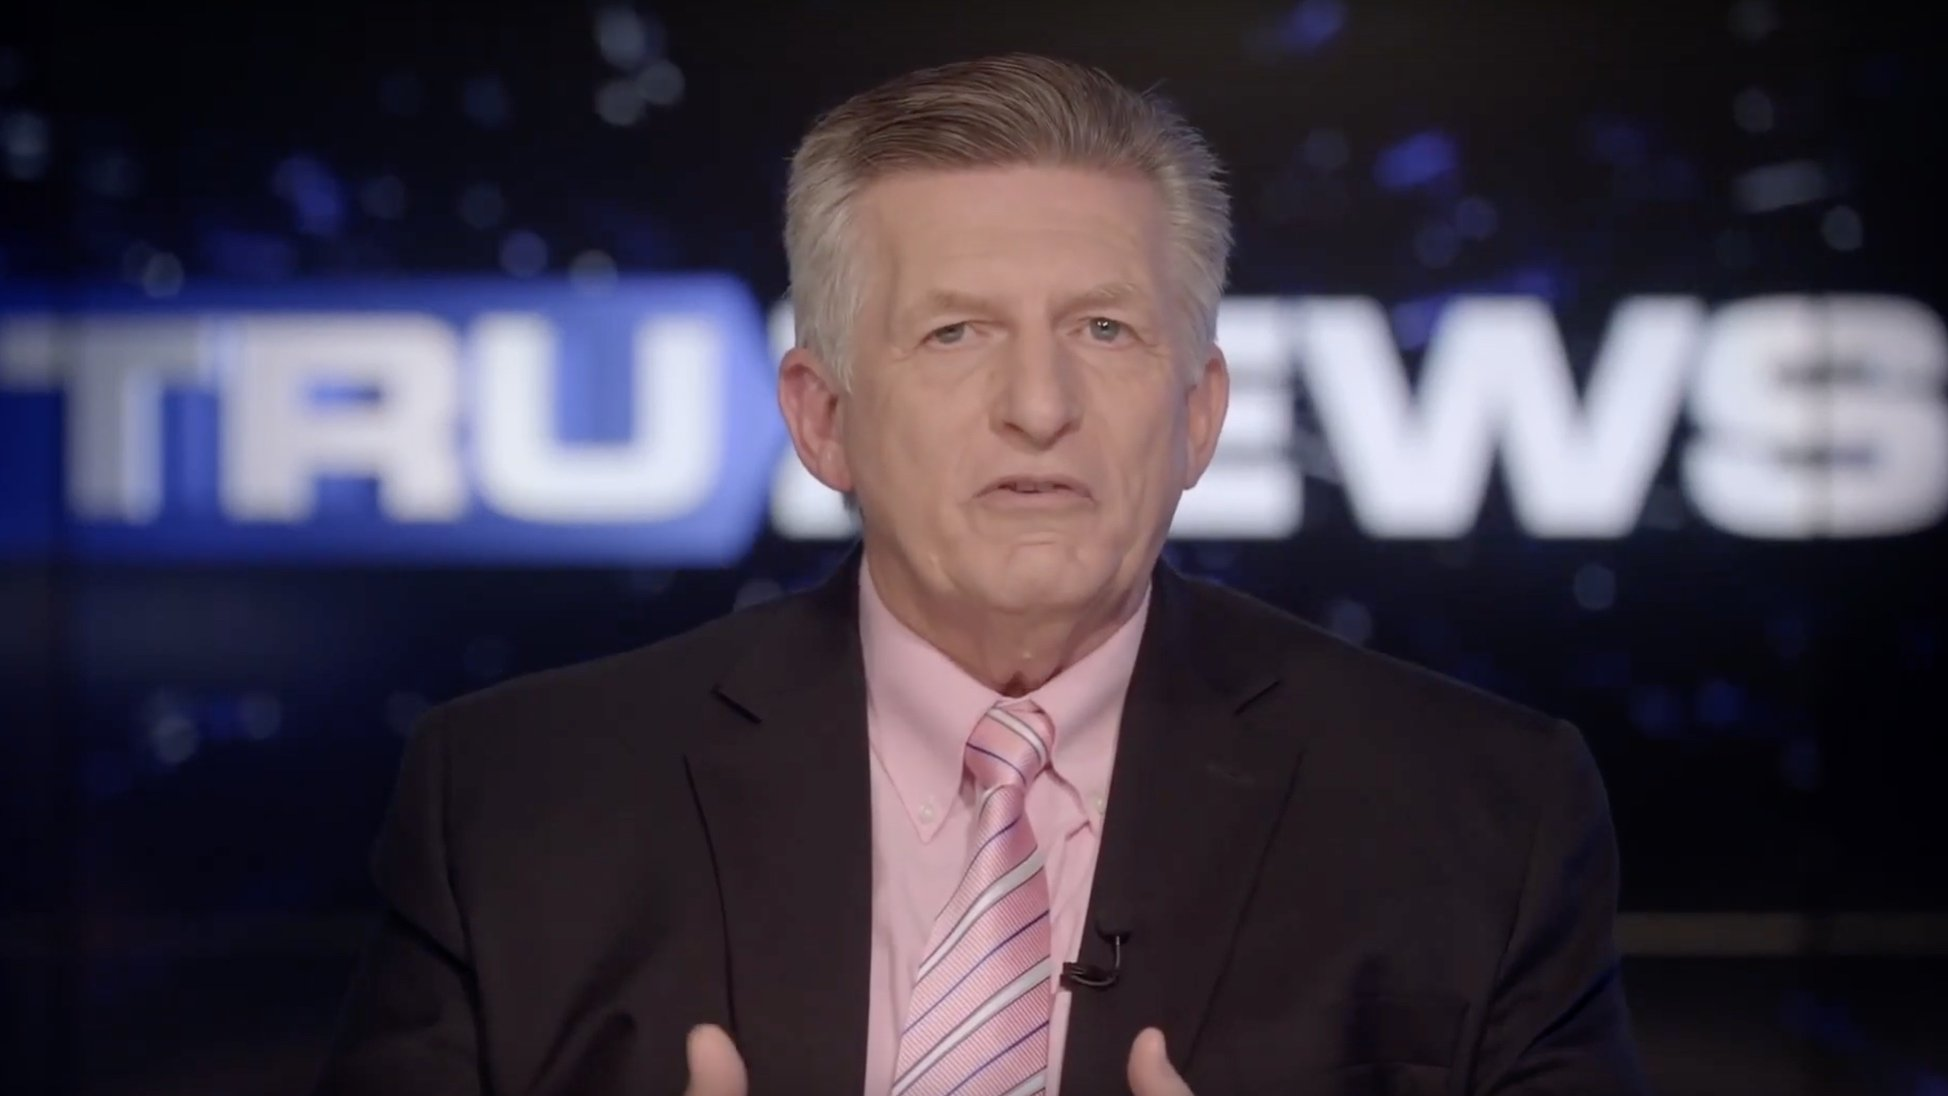 Rick Wiles has predictably blamed the Jews for the coronavirus pandemic.